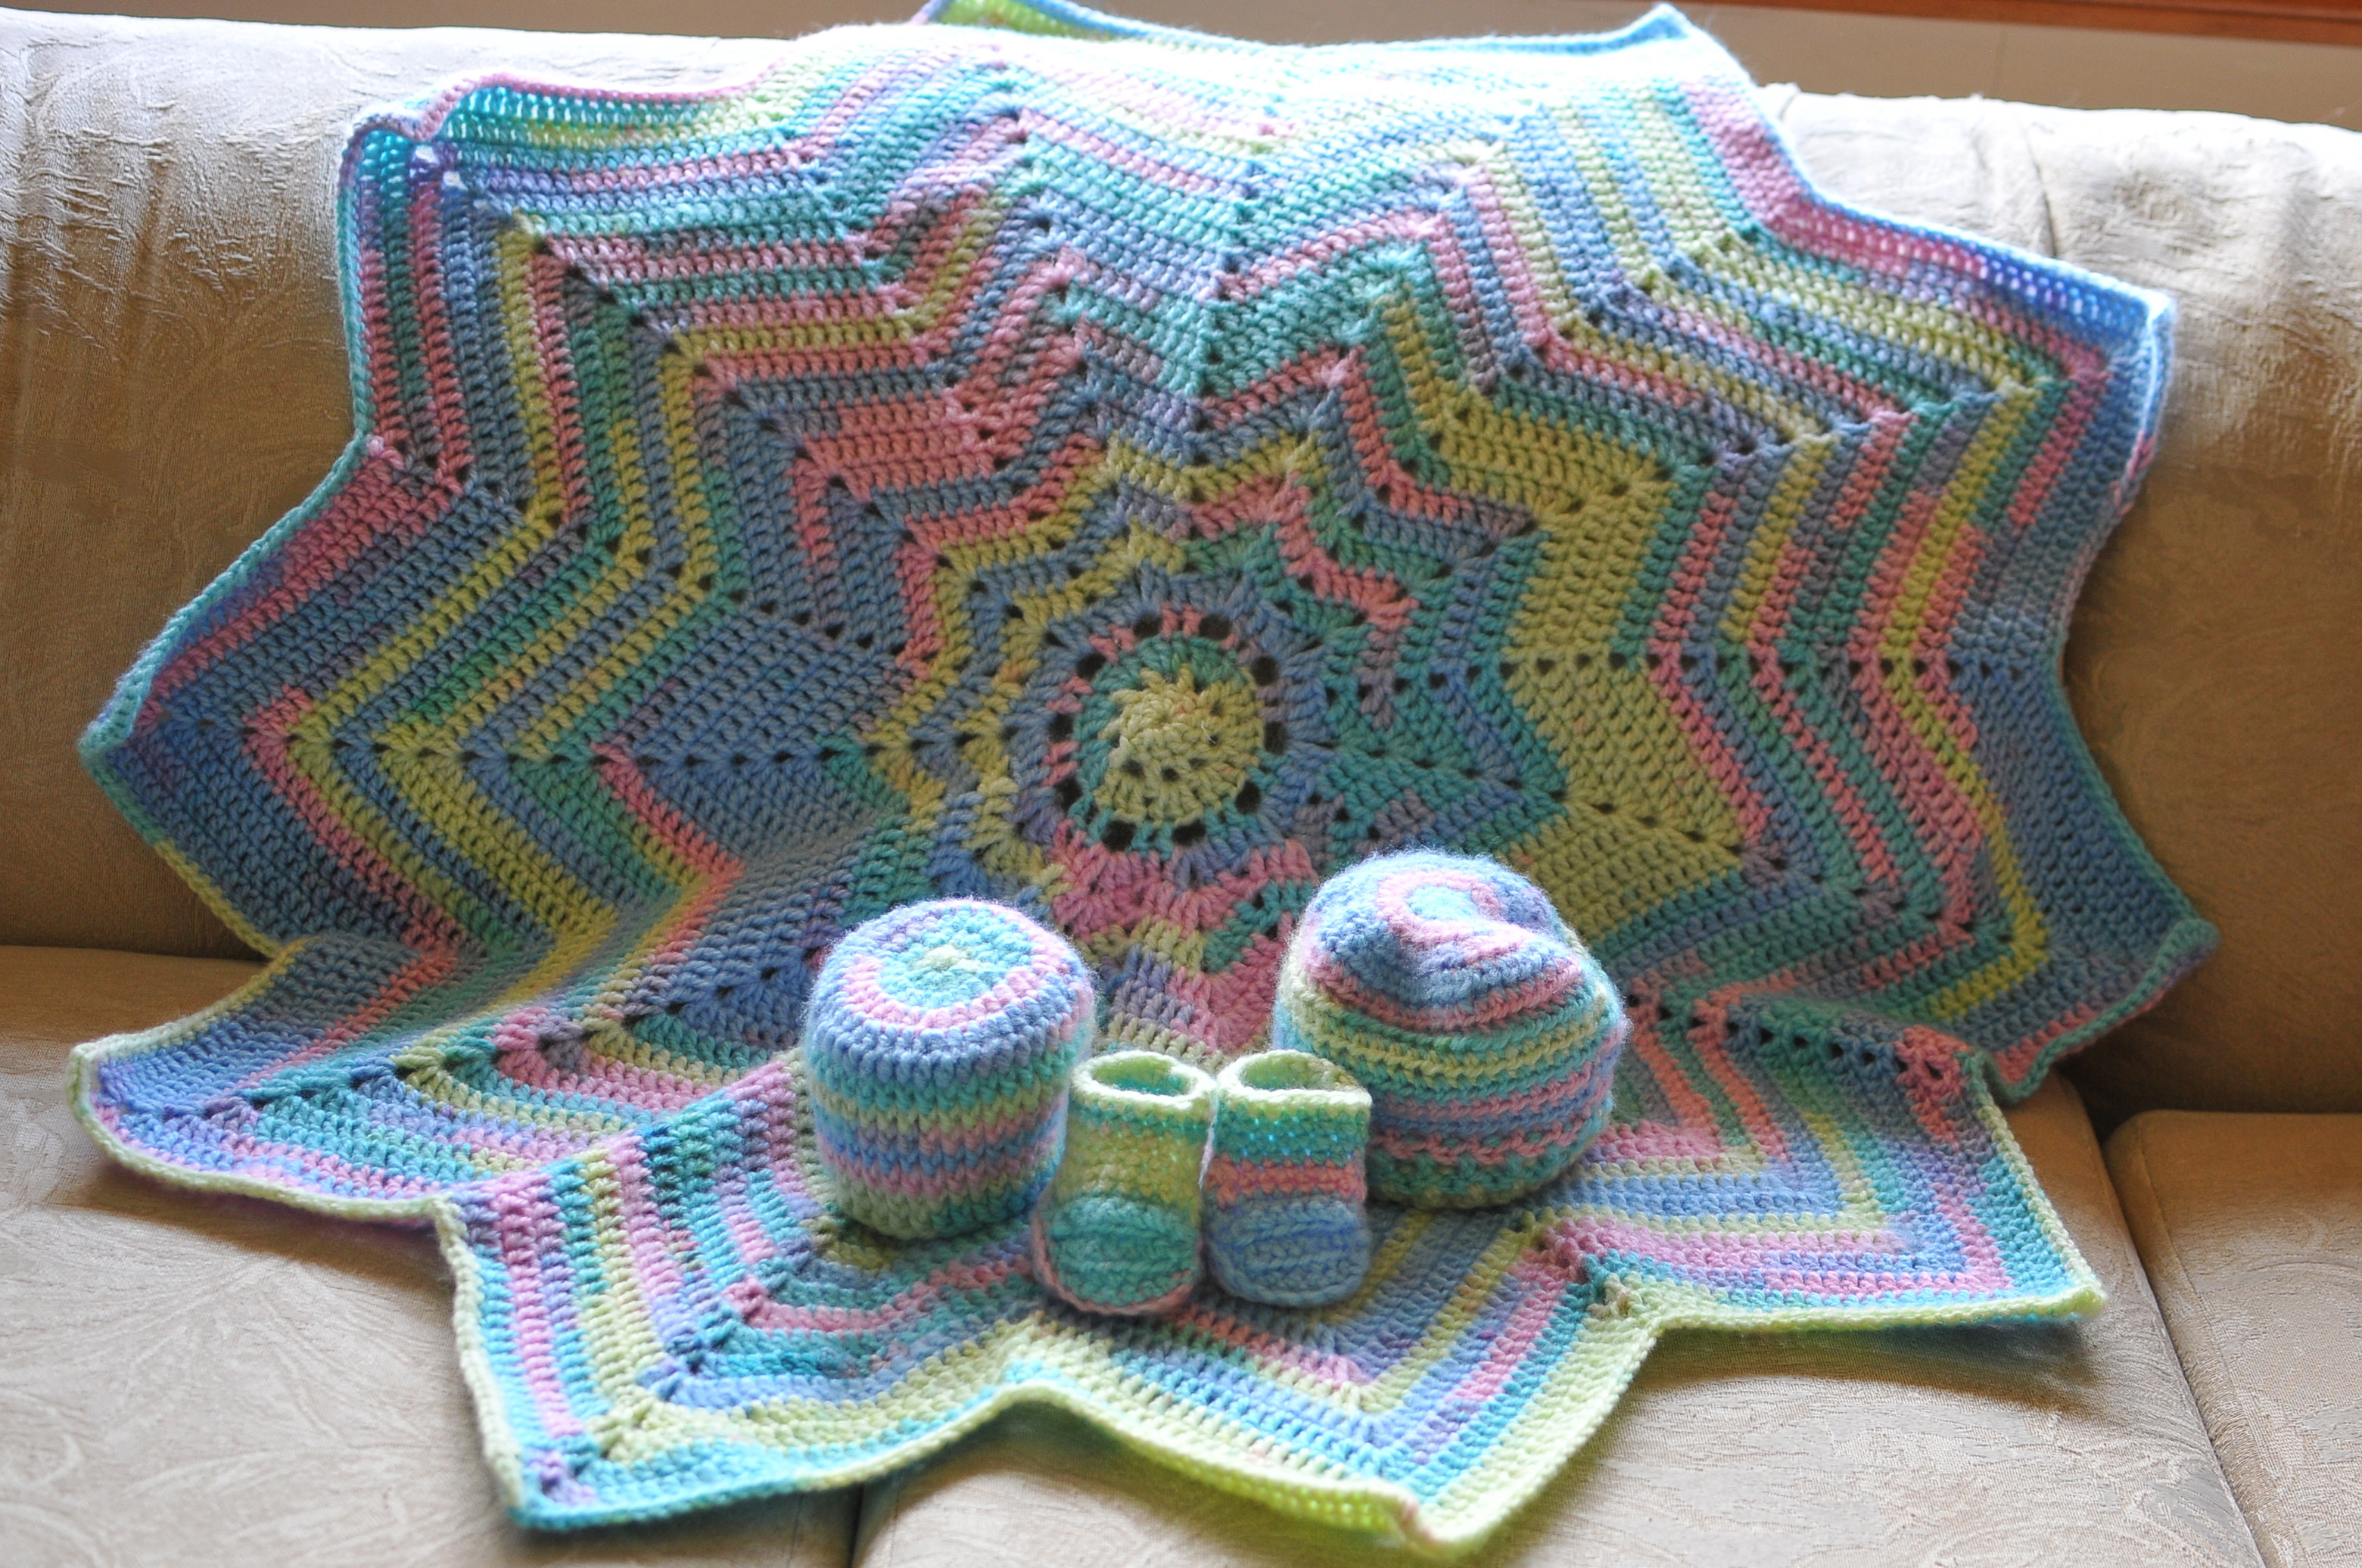 Inspirational Baby Blanket – Colouring with Yarn Best Yarn for Crochet Blanket Of Amazing 40 Images Best Yarn for Crochet Blanket